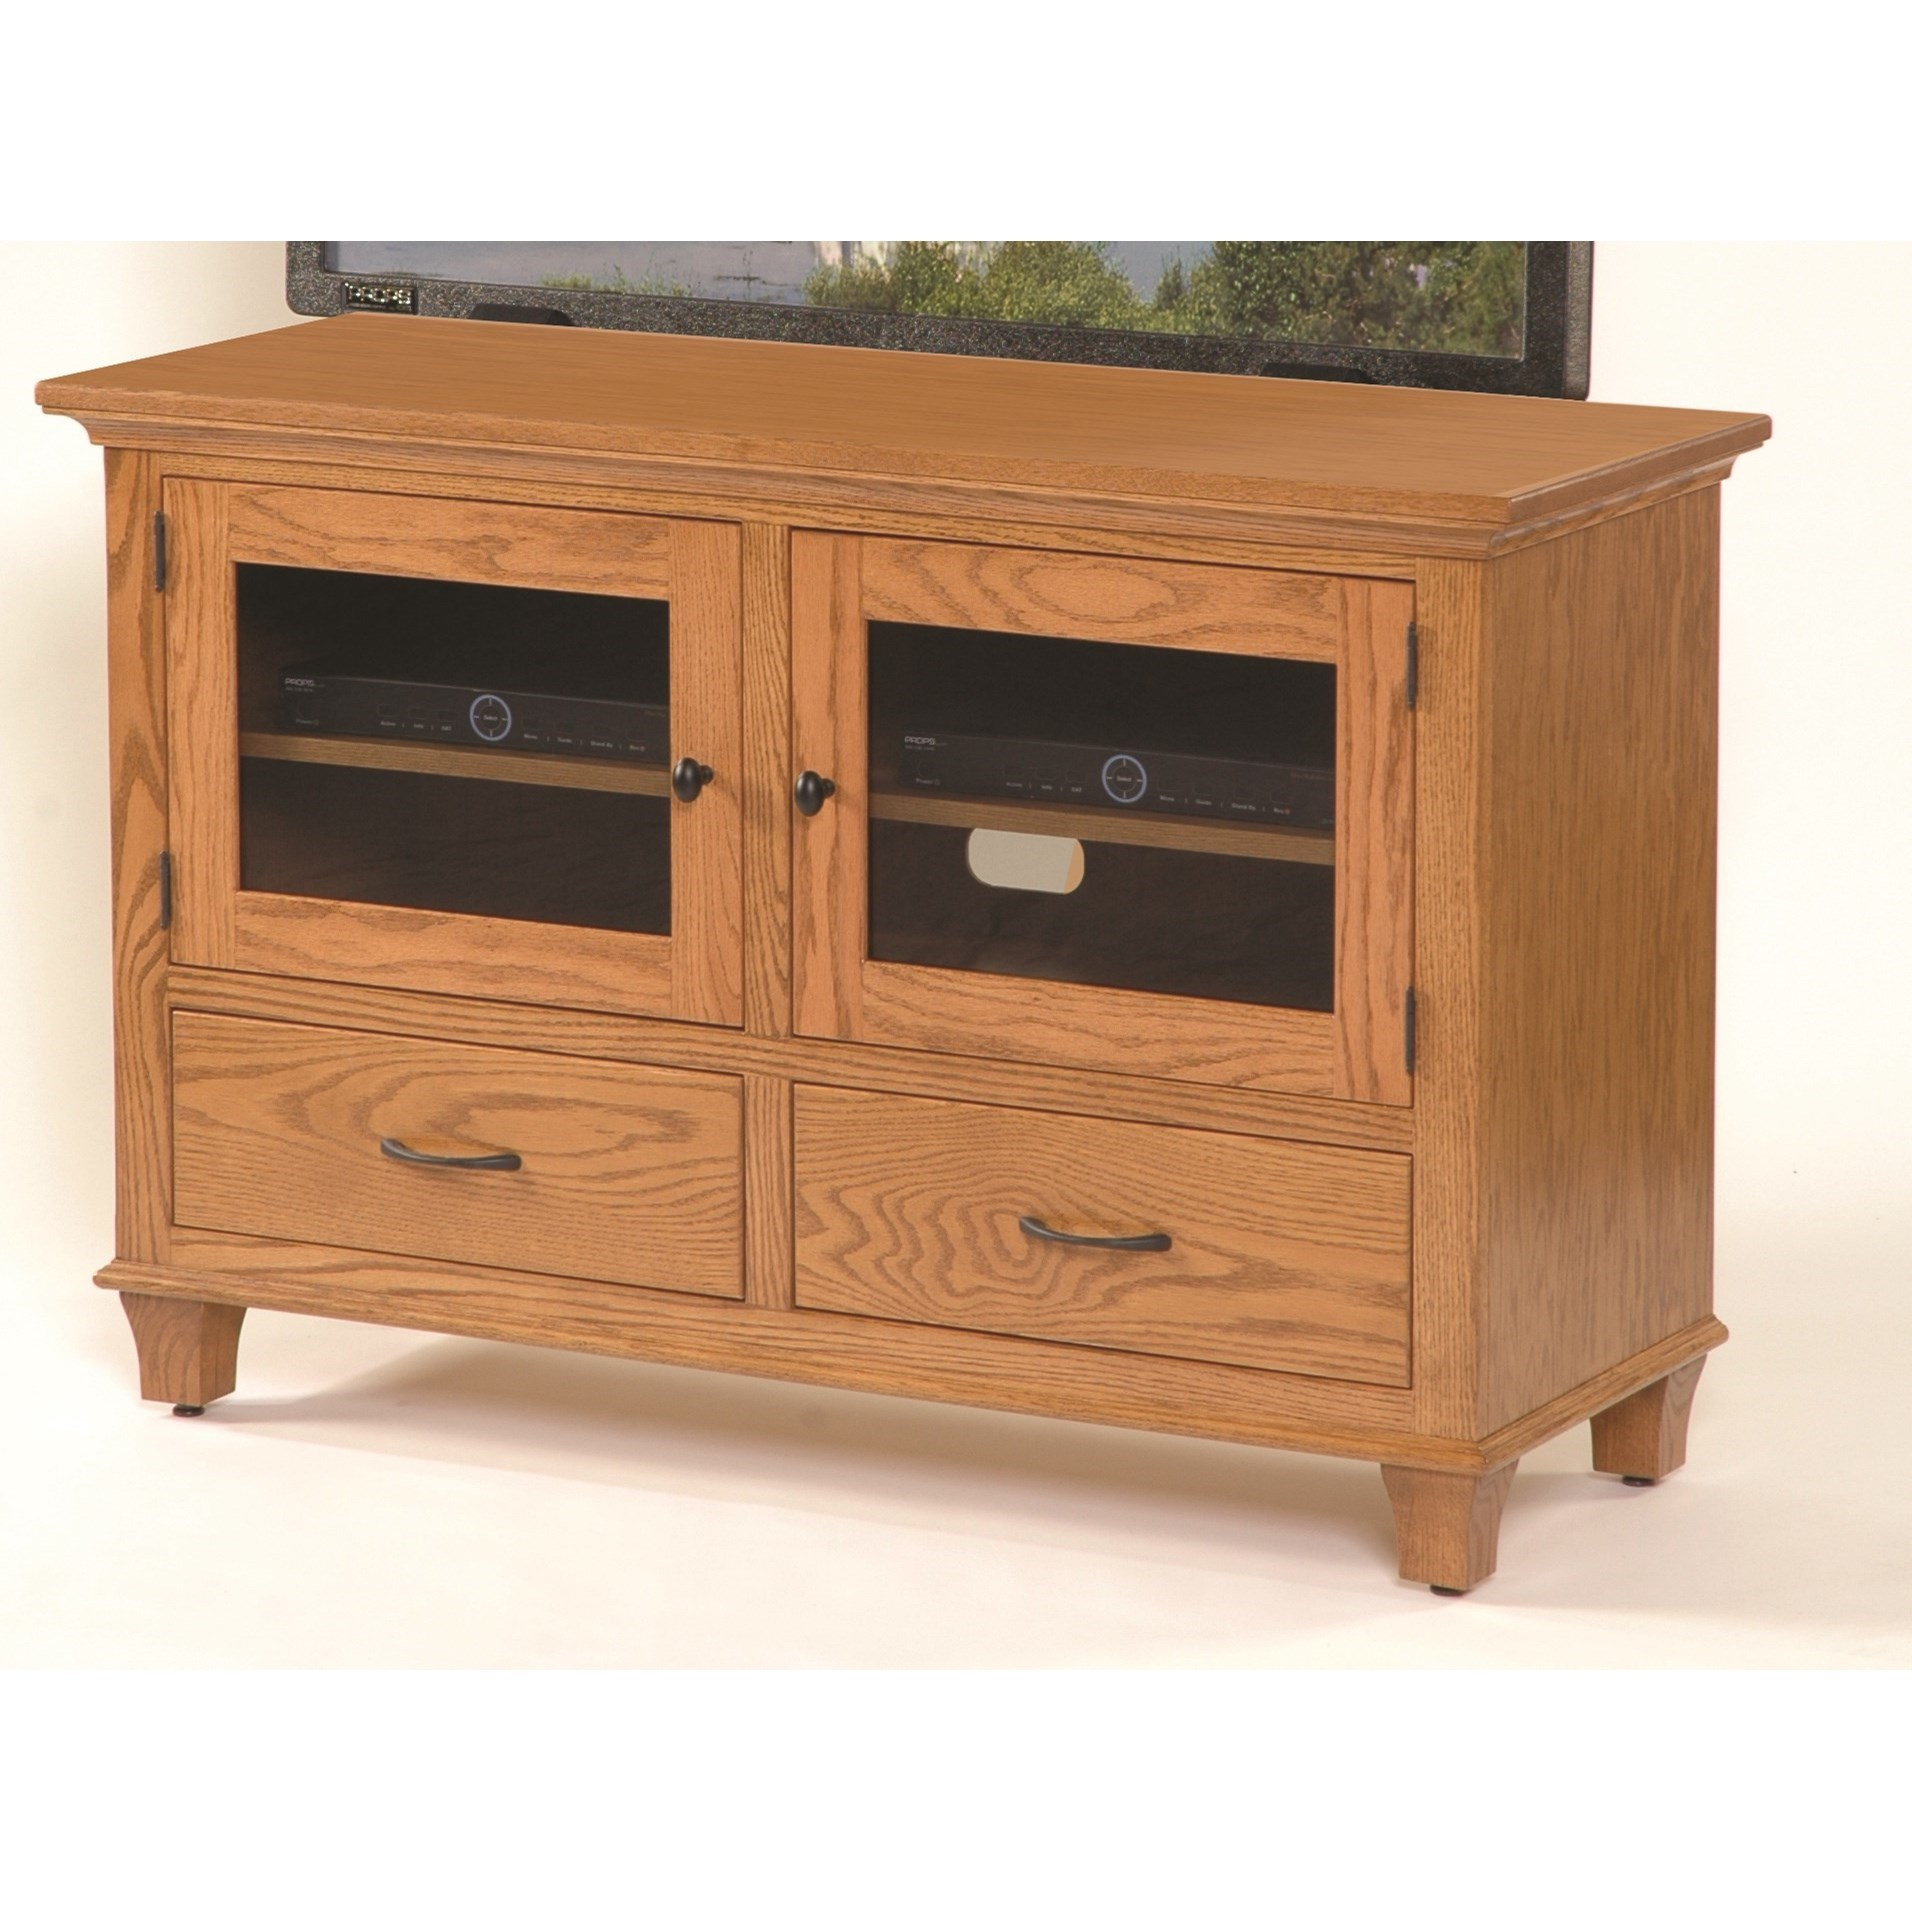 """Entertainment Bourten 48"""" TV Stand by INTEG Wood Products at Saugerties Furniture Mart"""